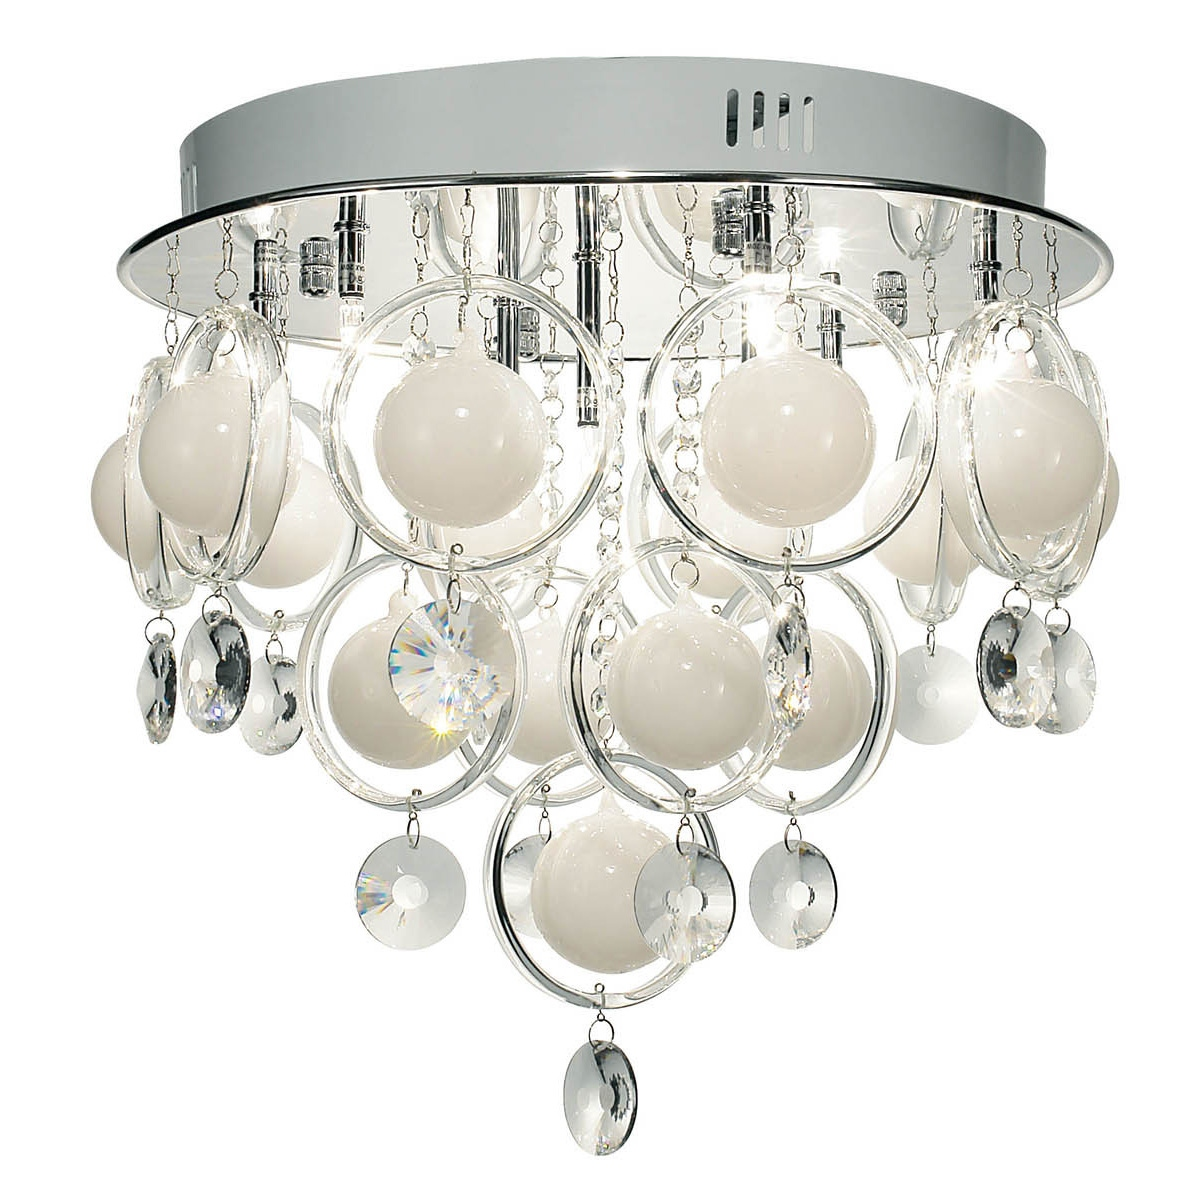 light cloud hamm architonic by from product ceiling en b isabel lighting general